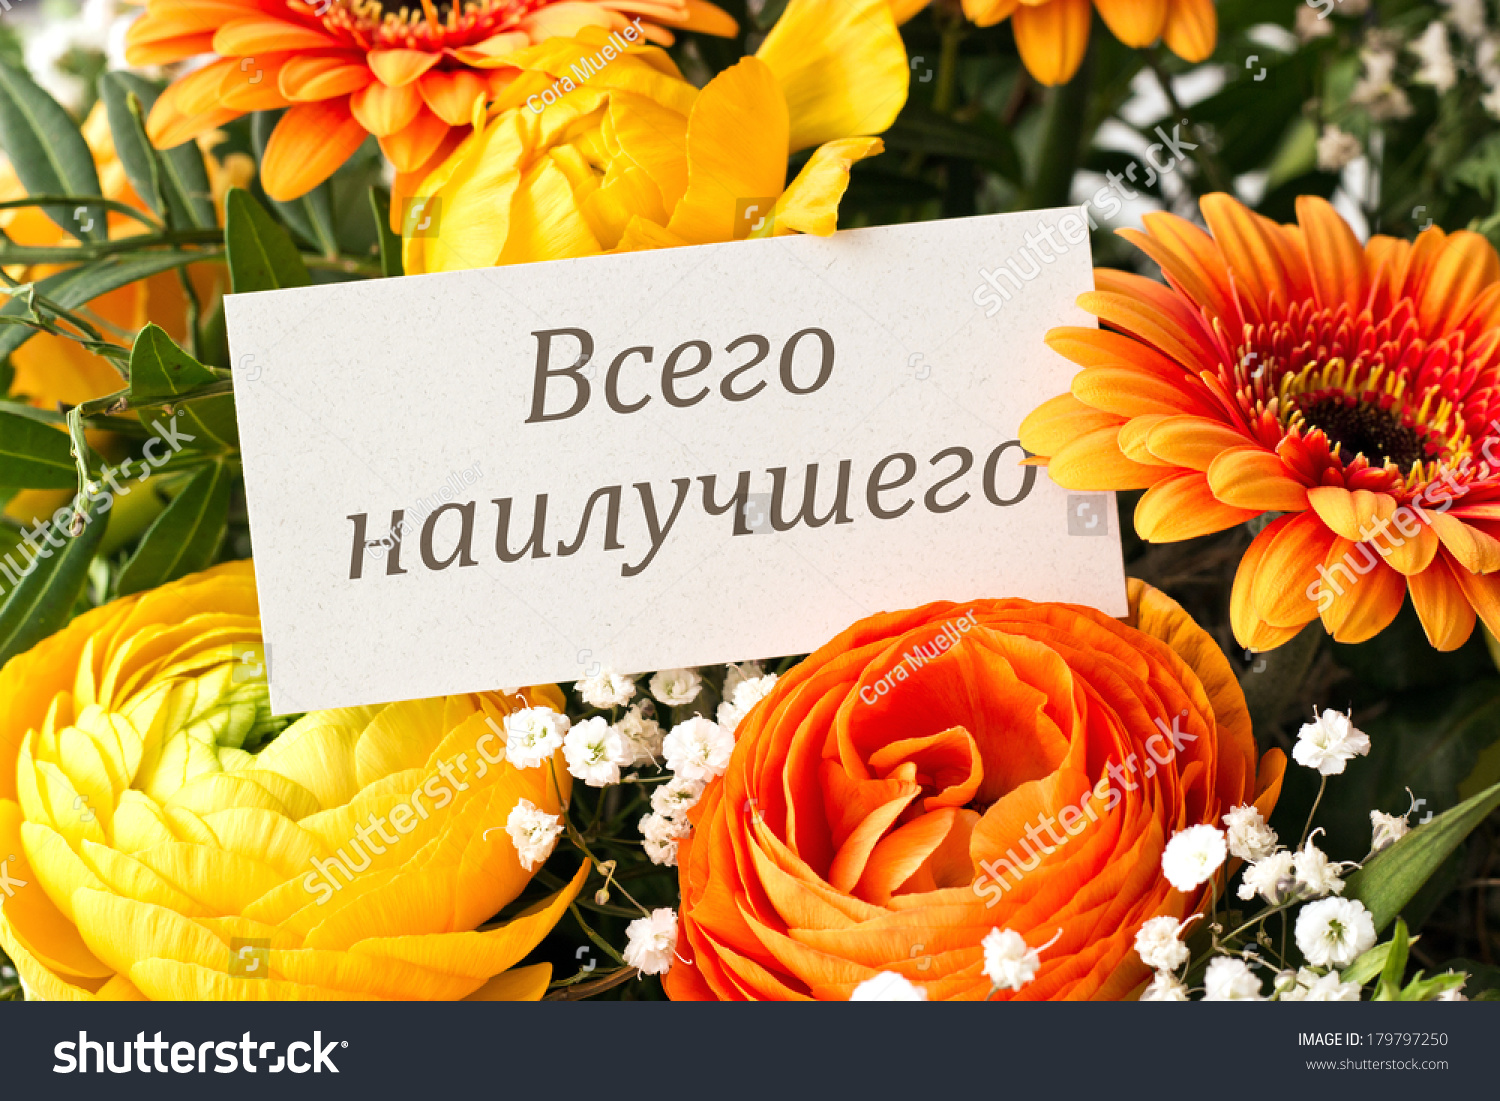 Bouquet Roses Gerbera Anemones Birthday Cardhappy Photo – Birthday Greetings in Russian